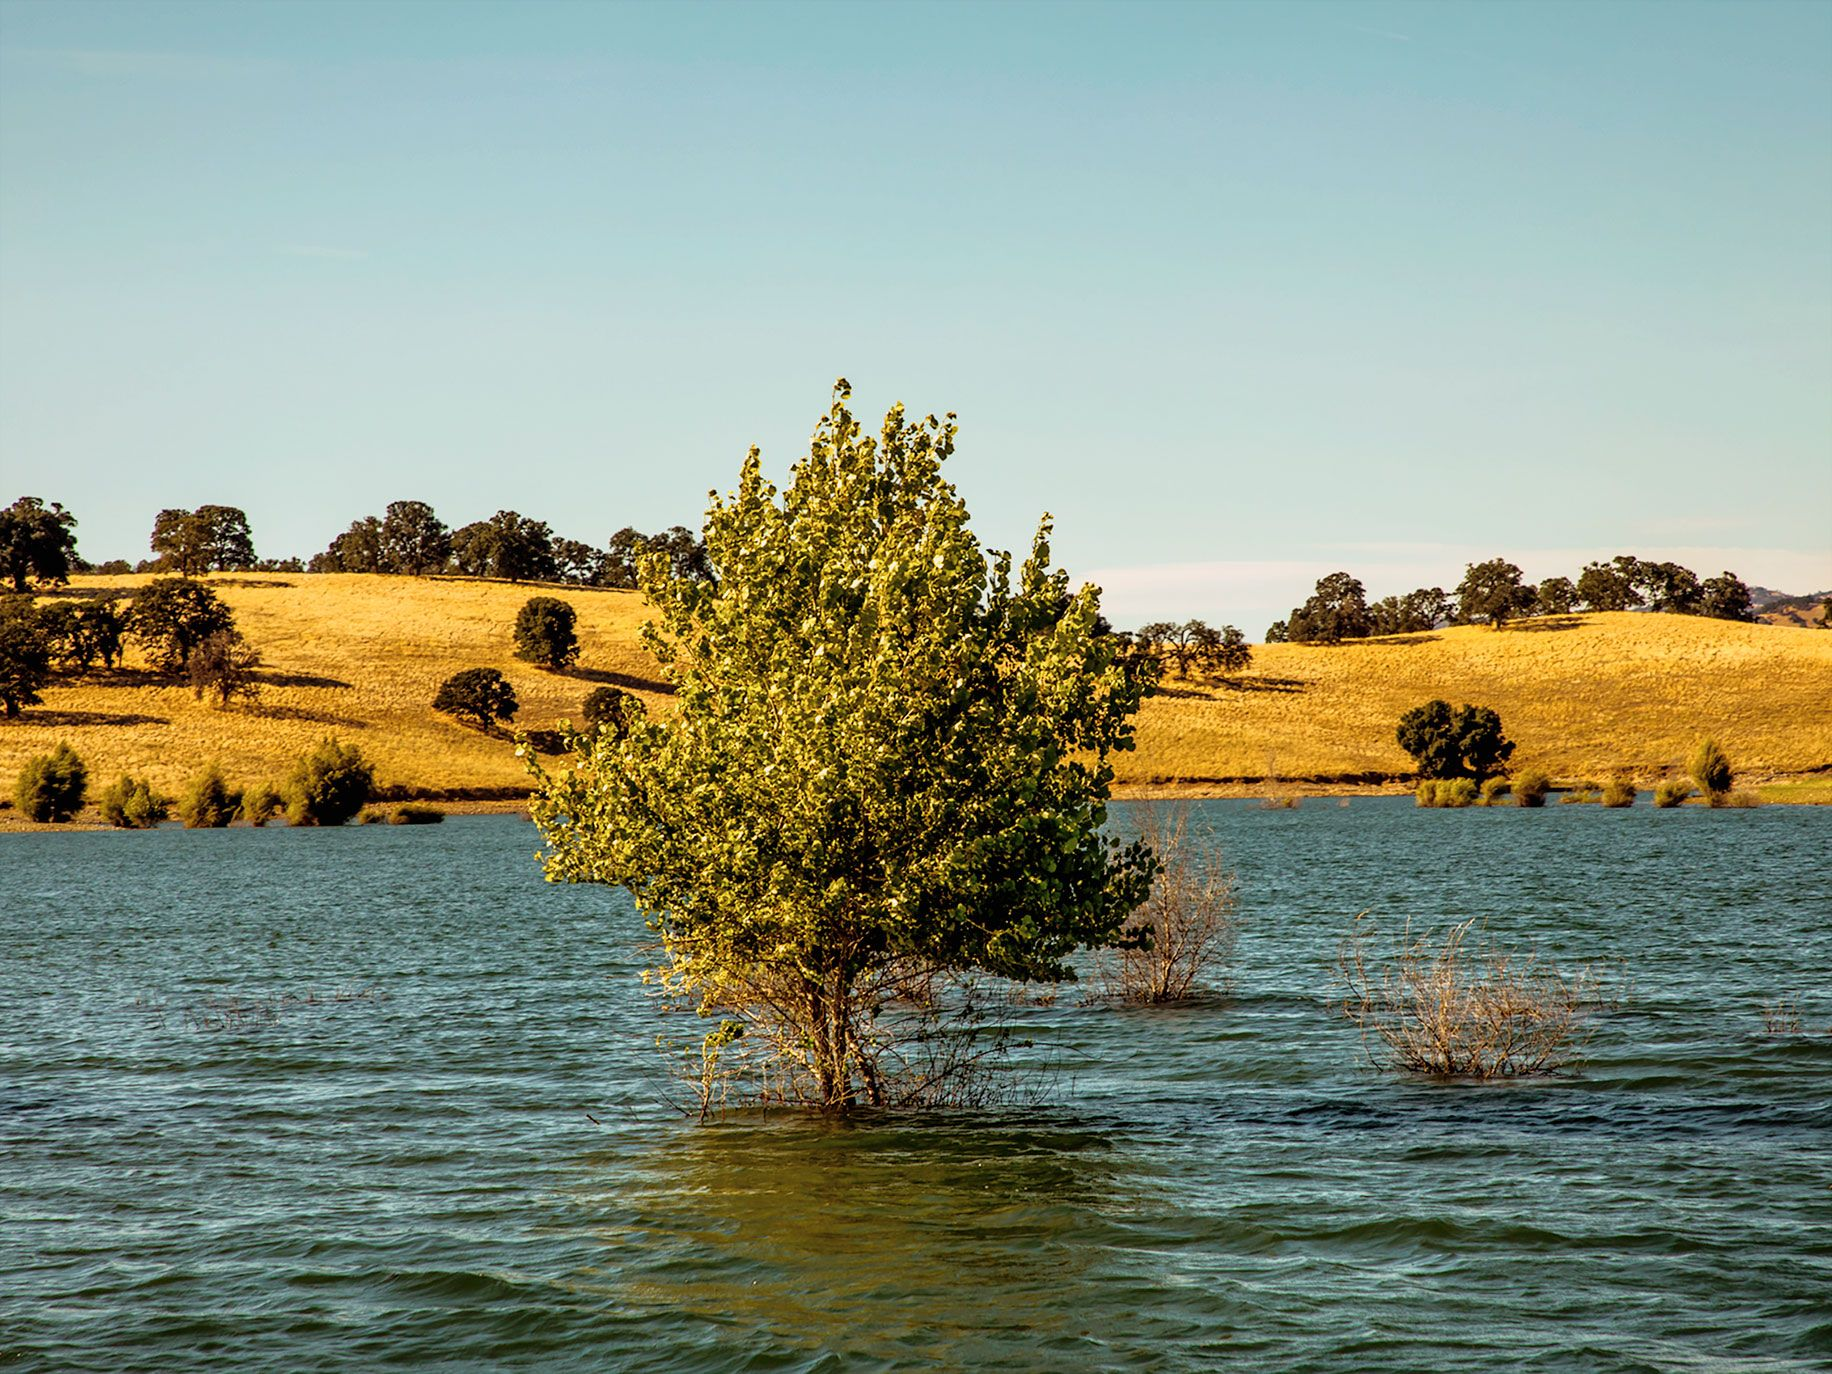 Cottonwood trees sprout from the lake bed when water levels drop during dry months.